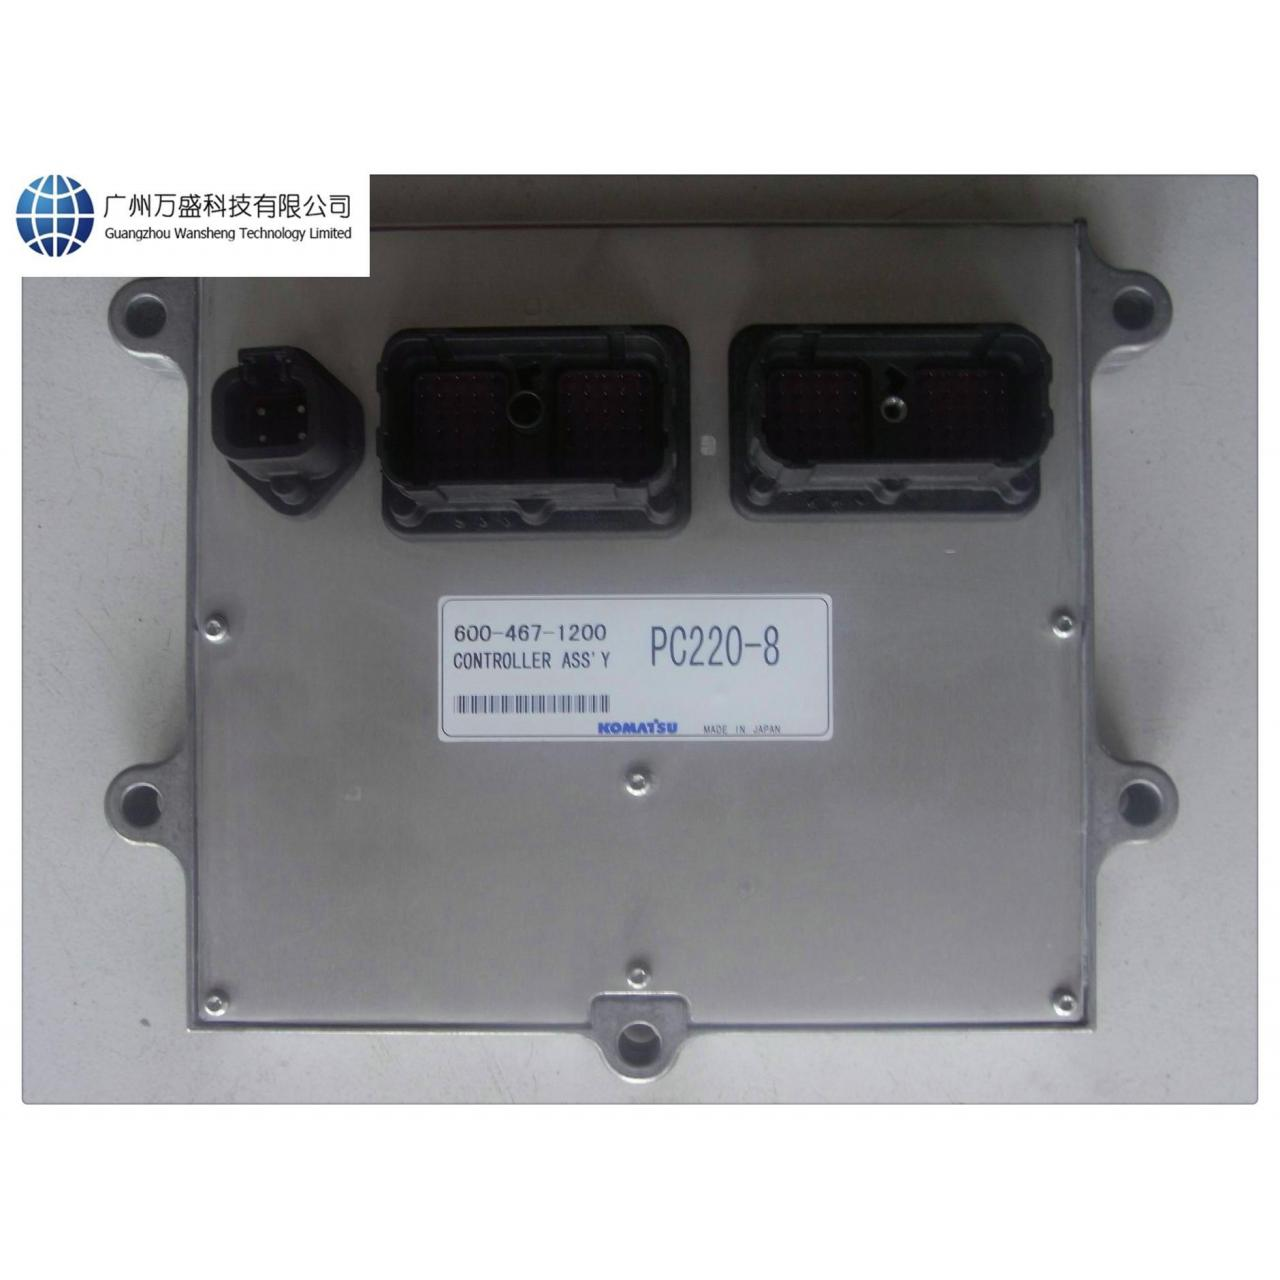 Quality 600-467-1200 Komatsu PC220-8 Controller Ass'y Engine Control Computer for sale